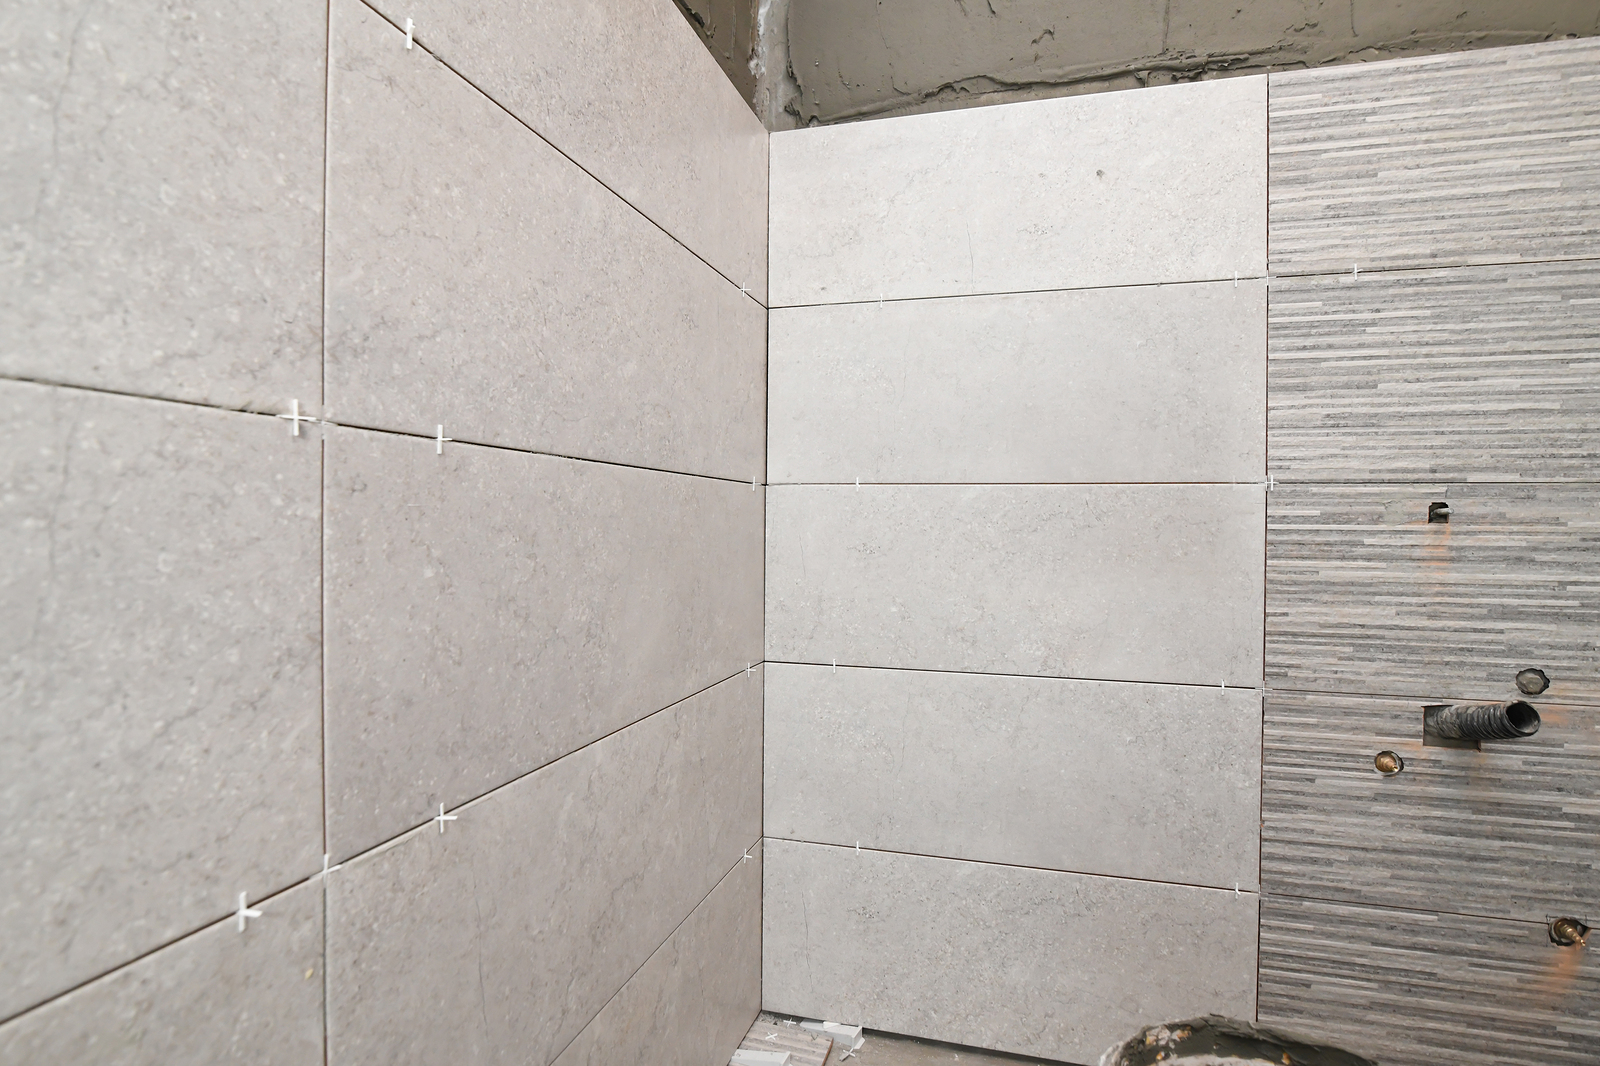 Repair the bathroom. Renovation at home unfinished ceramic tiles with spacers